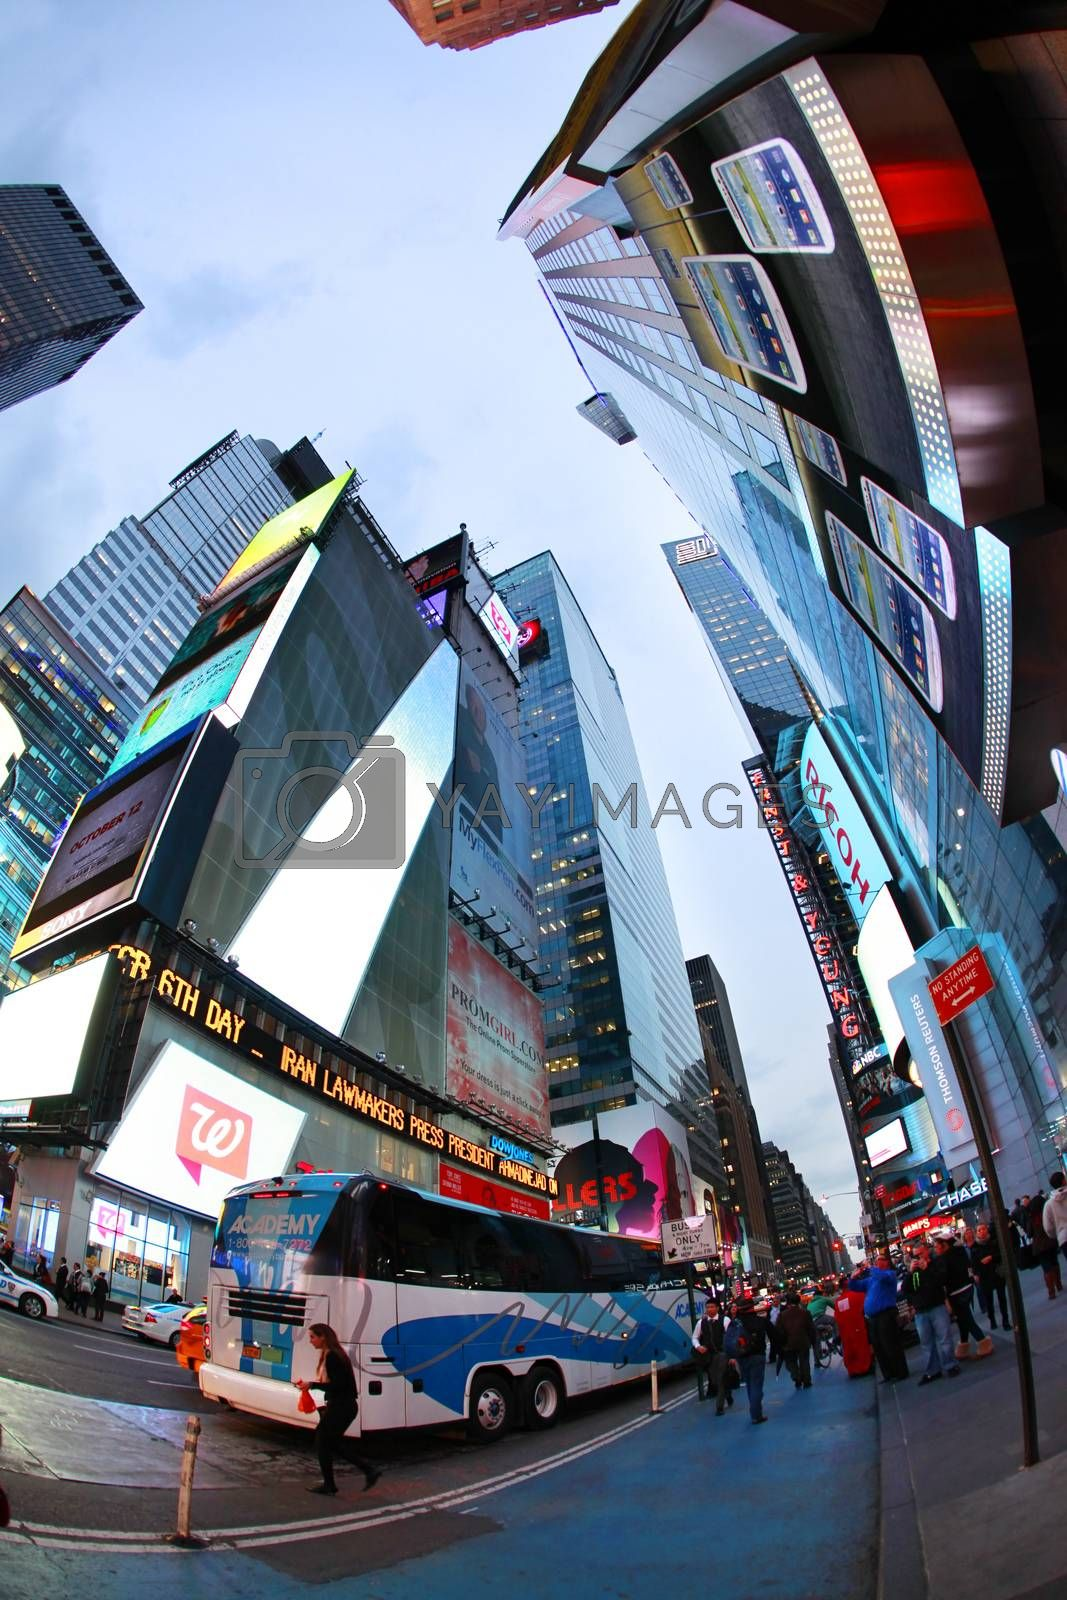 NEW YORK CITY - OCTOBER 9: Times Square featured with Broadway Theaters and huge number of LED signs is a symbol of New York City and the United States October 9 2012 in Manhattan, New York City